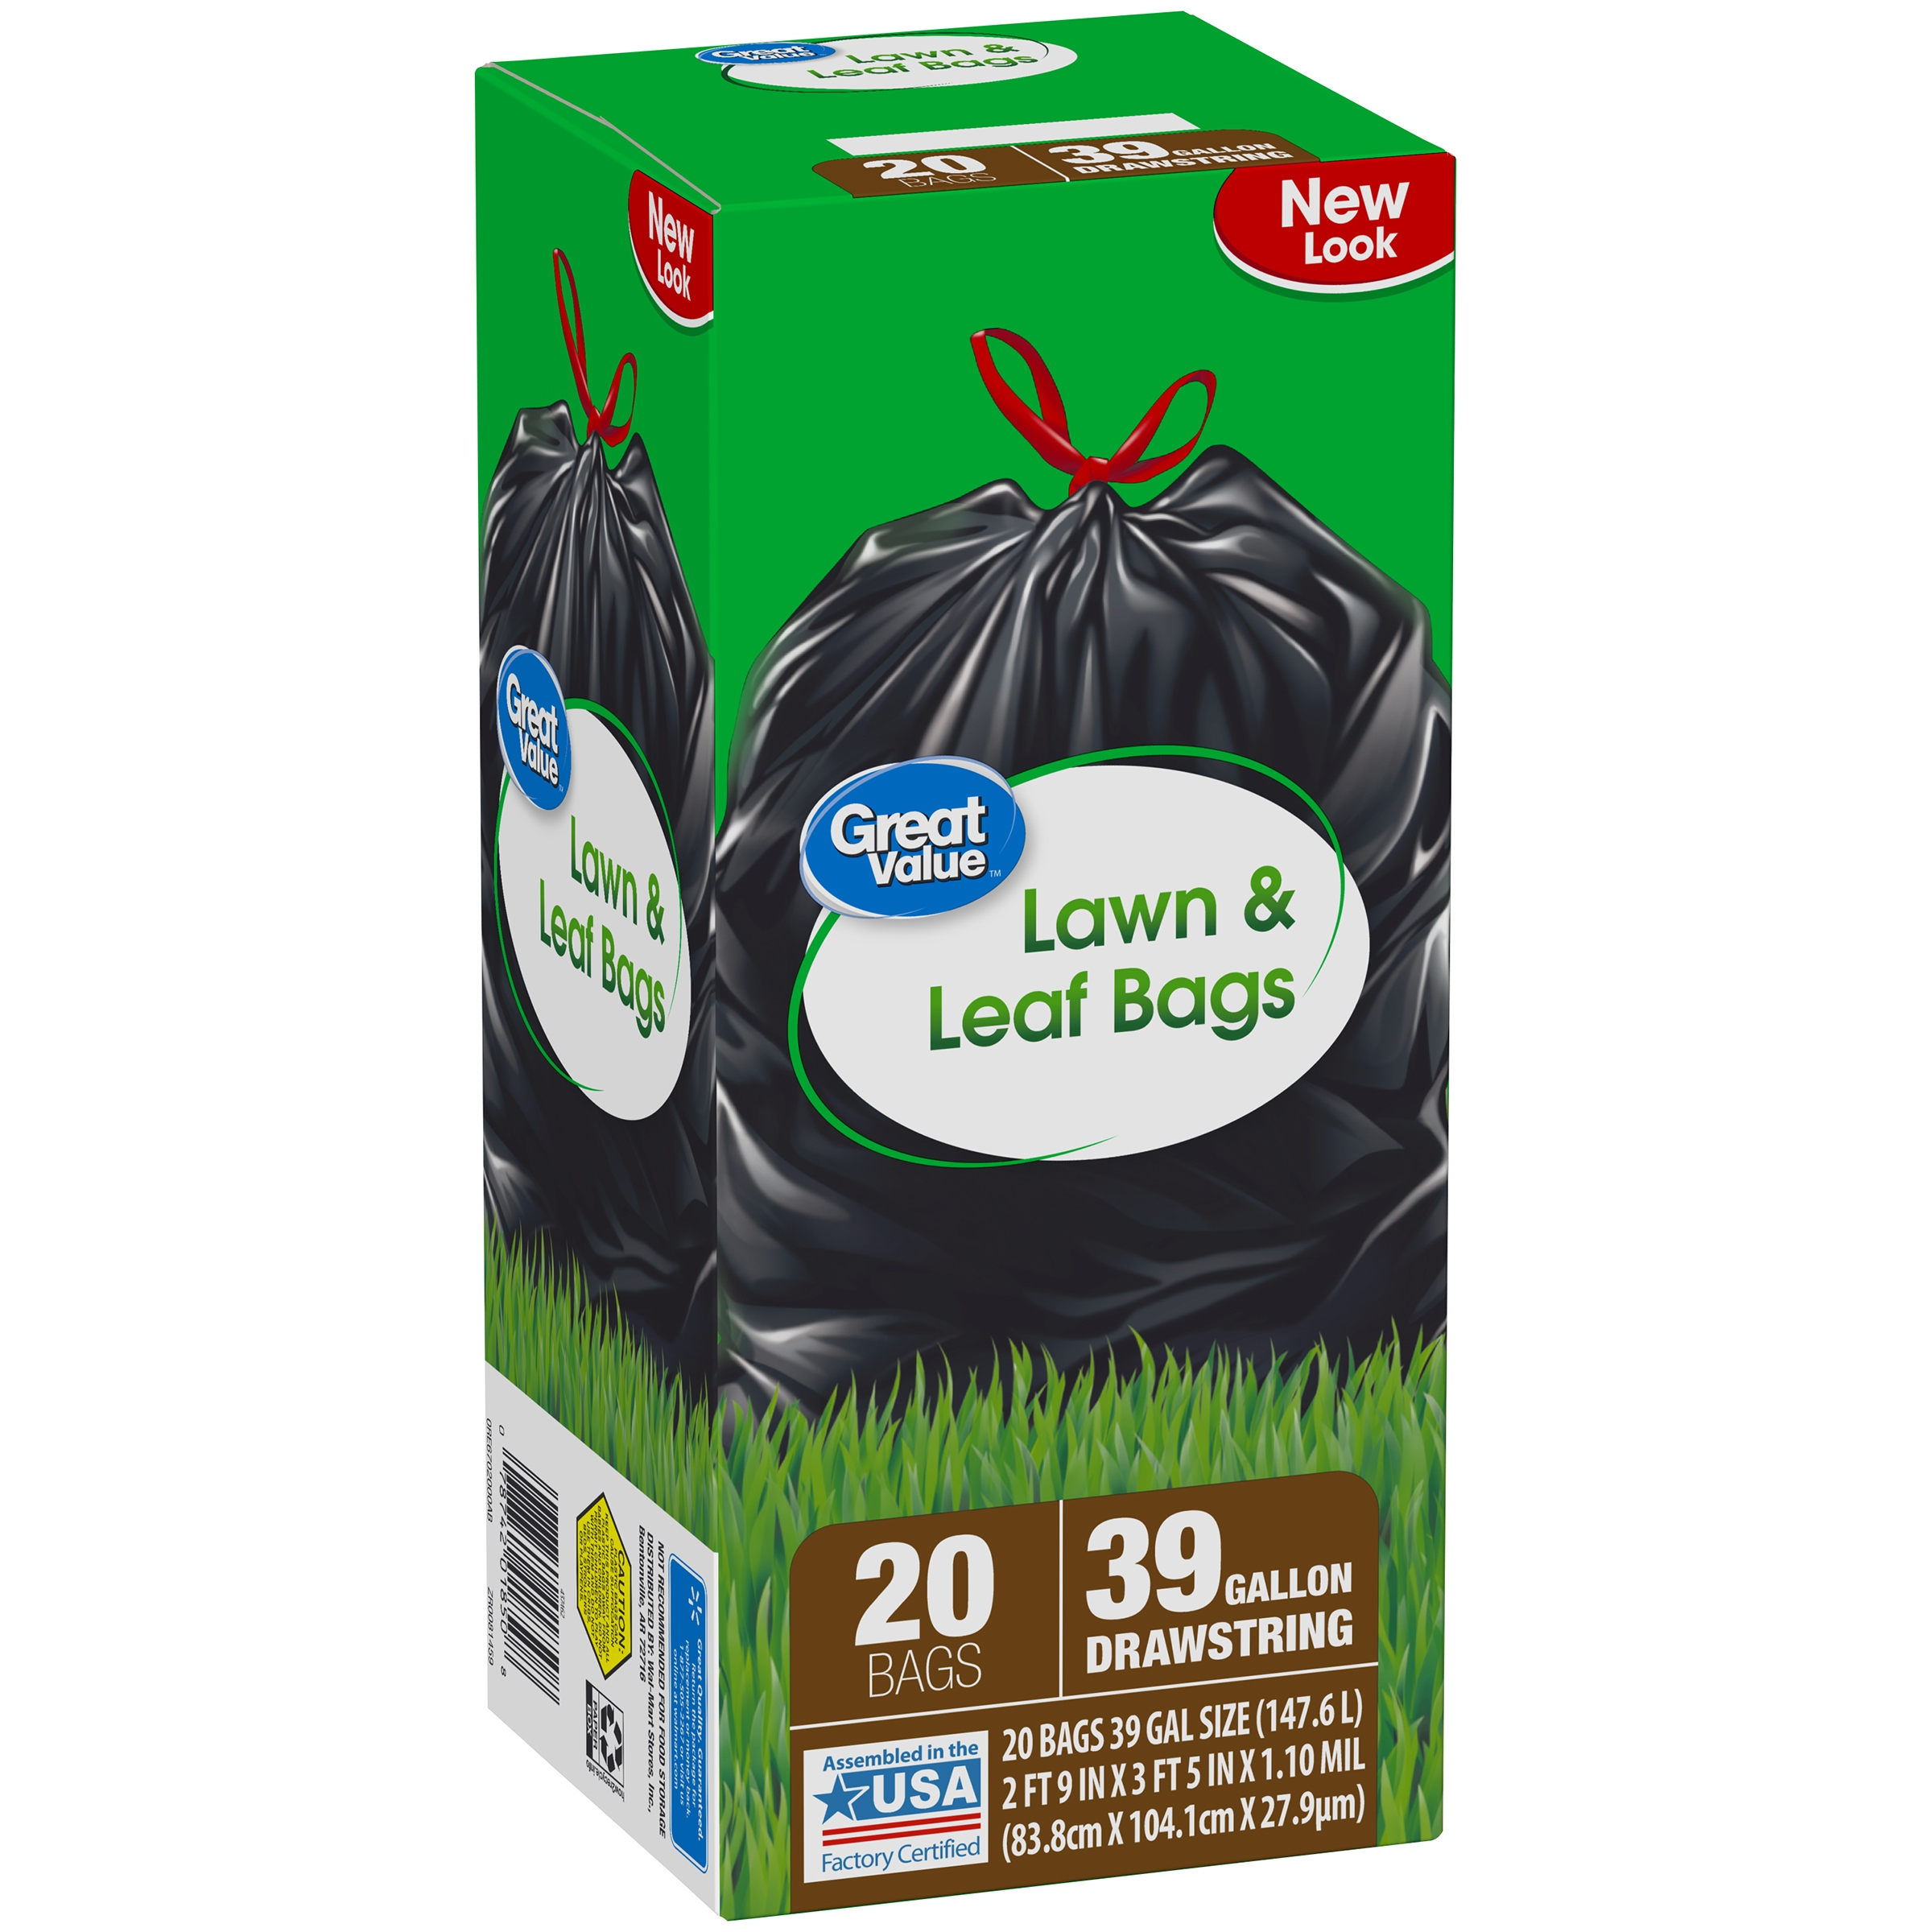 Great Value Drawstring Lawn & Leaf Bags, 39 Gallon, 20 Ct